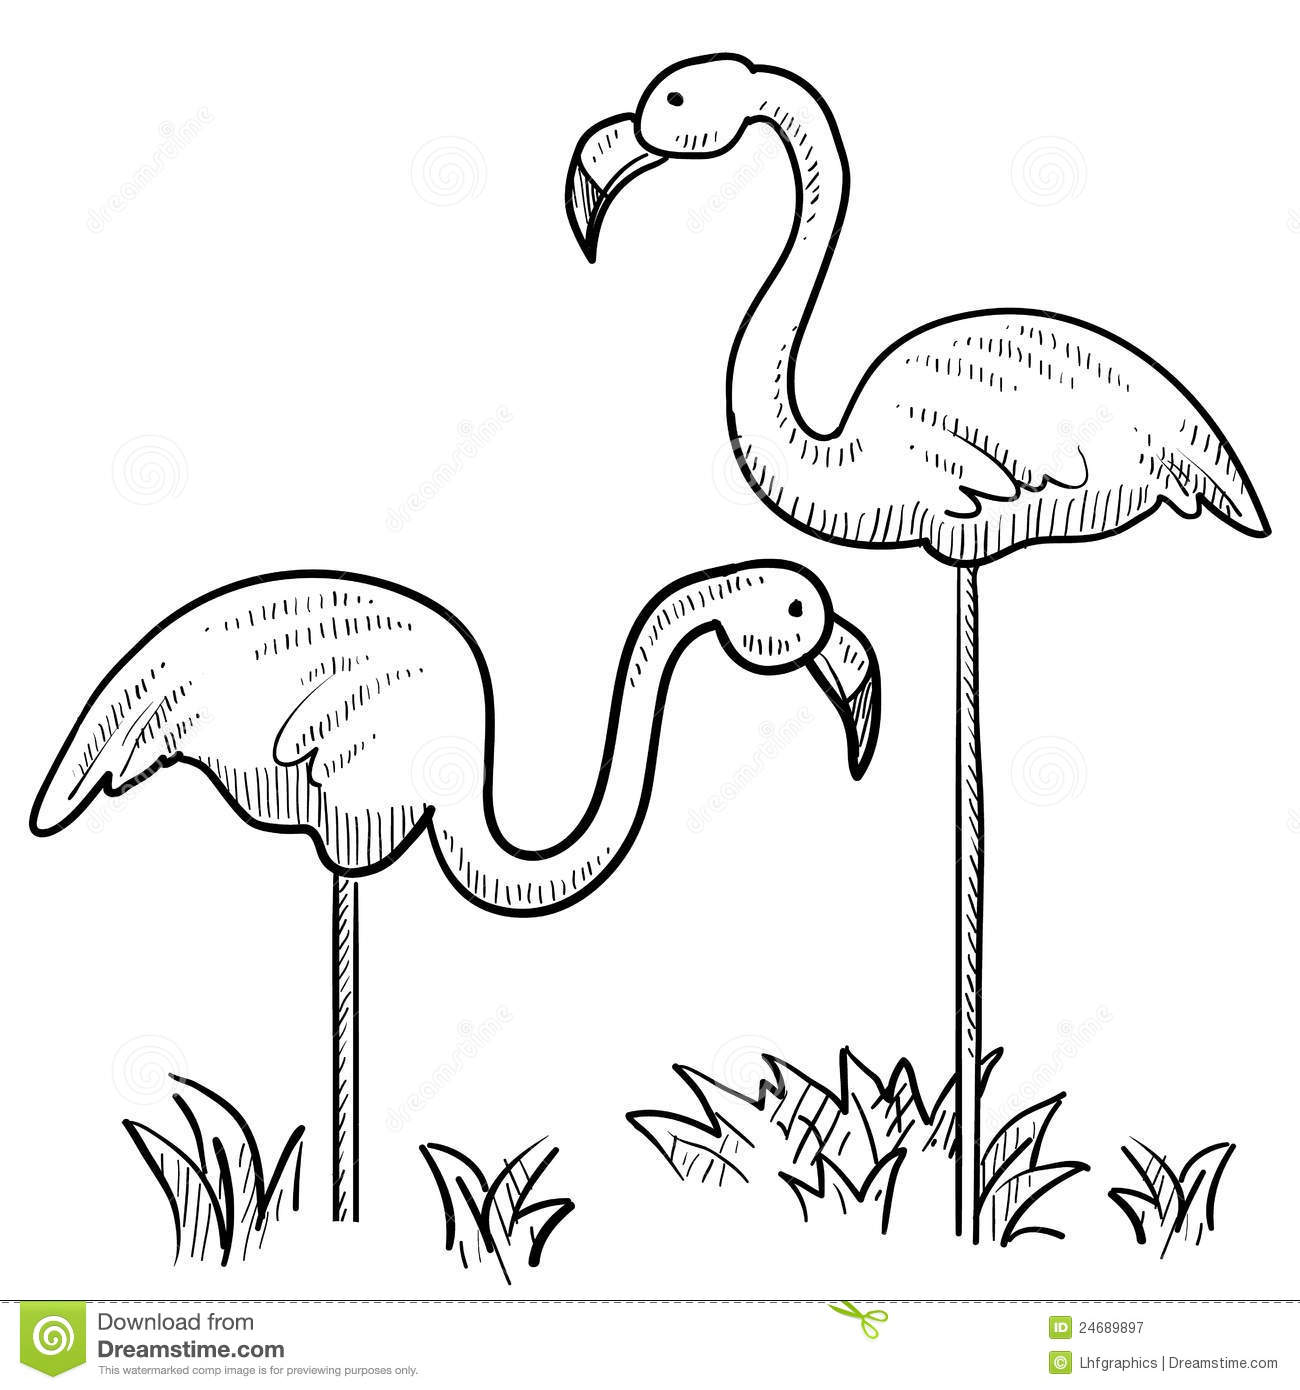 Doodle Style Sketch Of Two Flamingo Birds Standing In The Grass